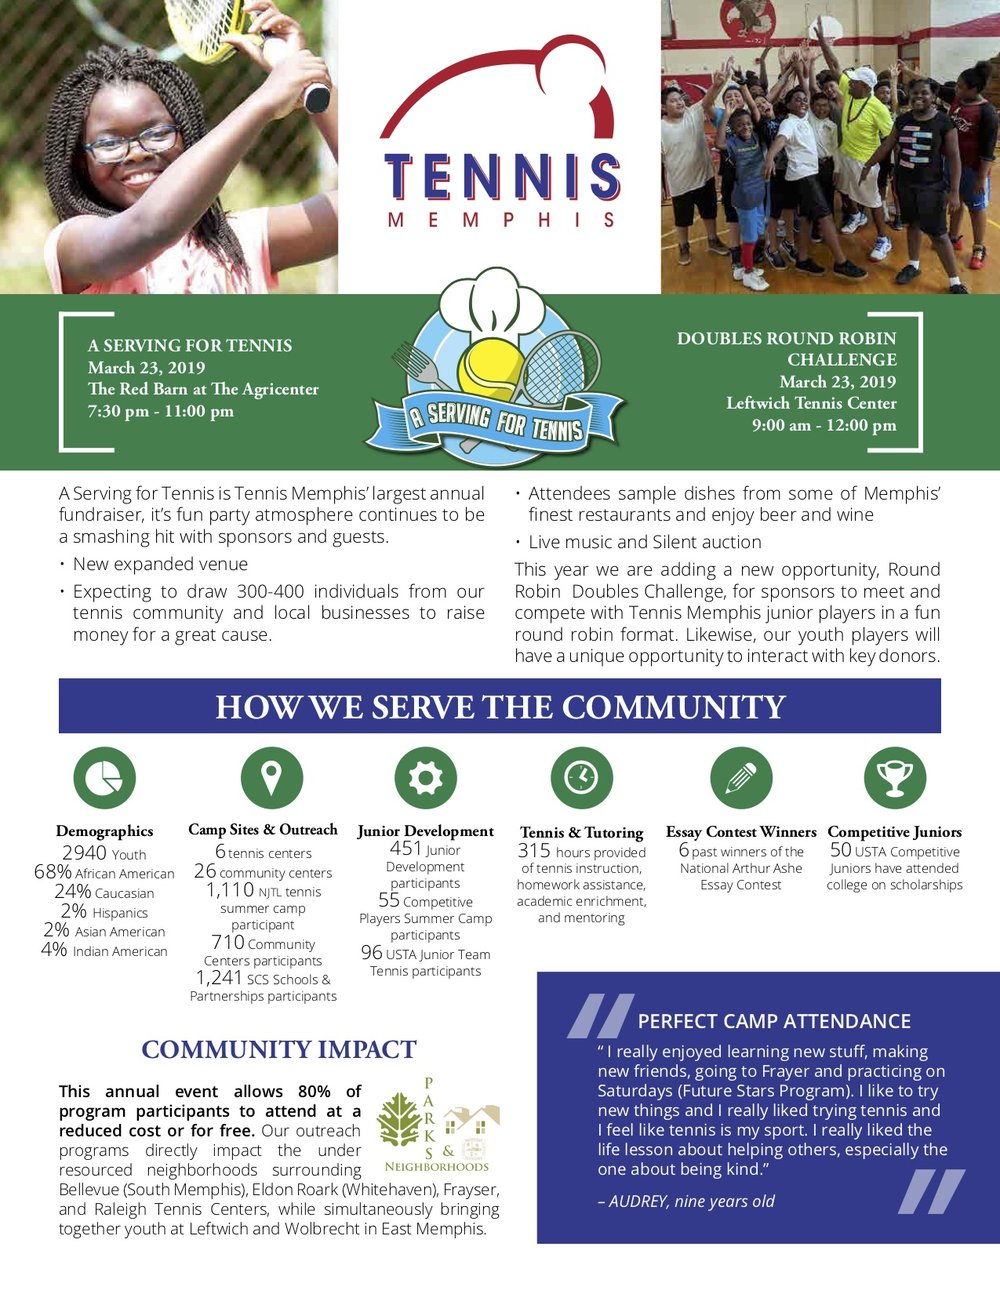 TennisMphsDonorBenefits730timev2.jpg